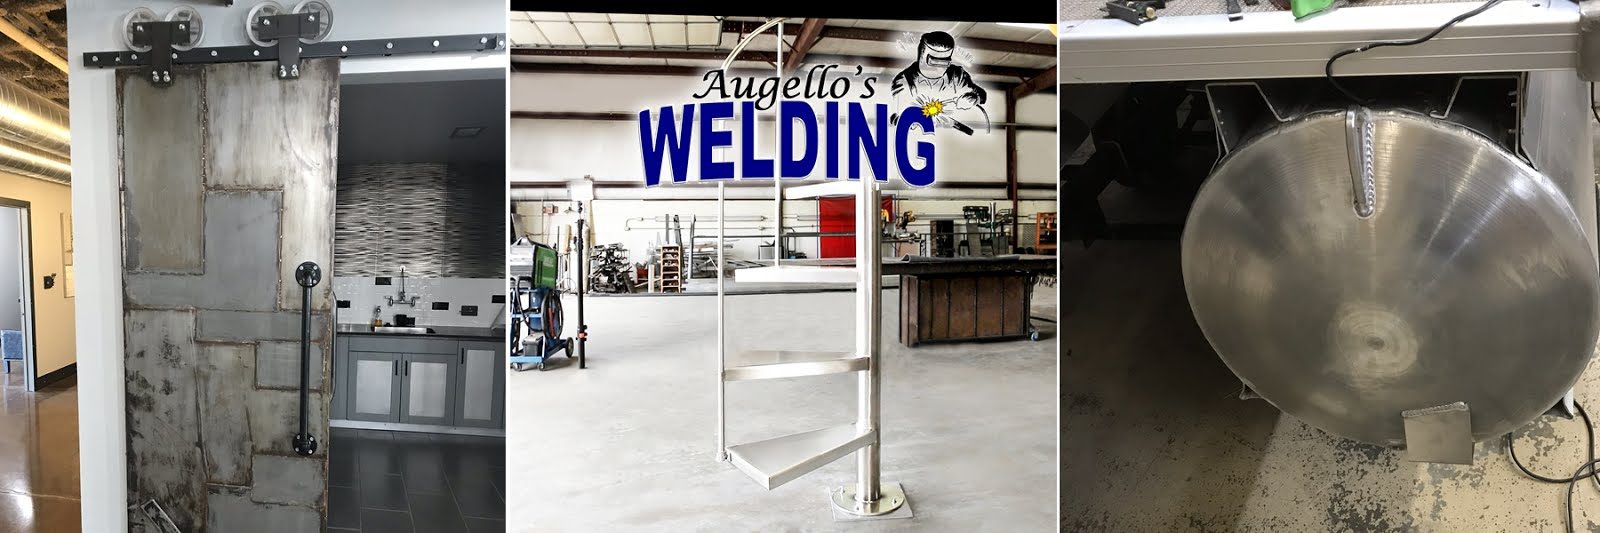 Augello's Welding and Fabrication, LLC